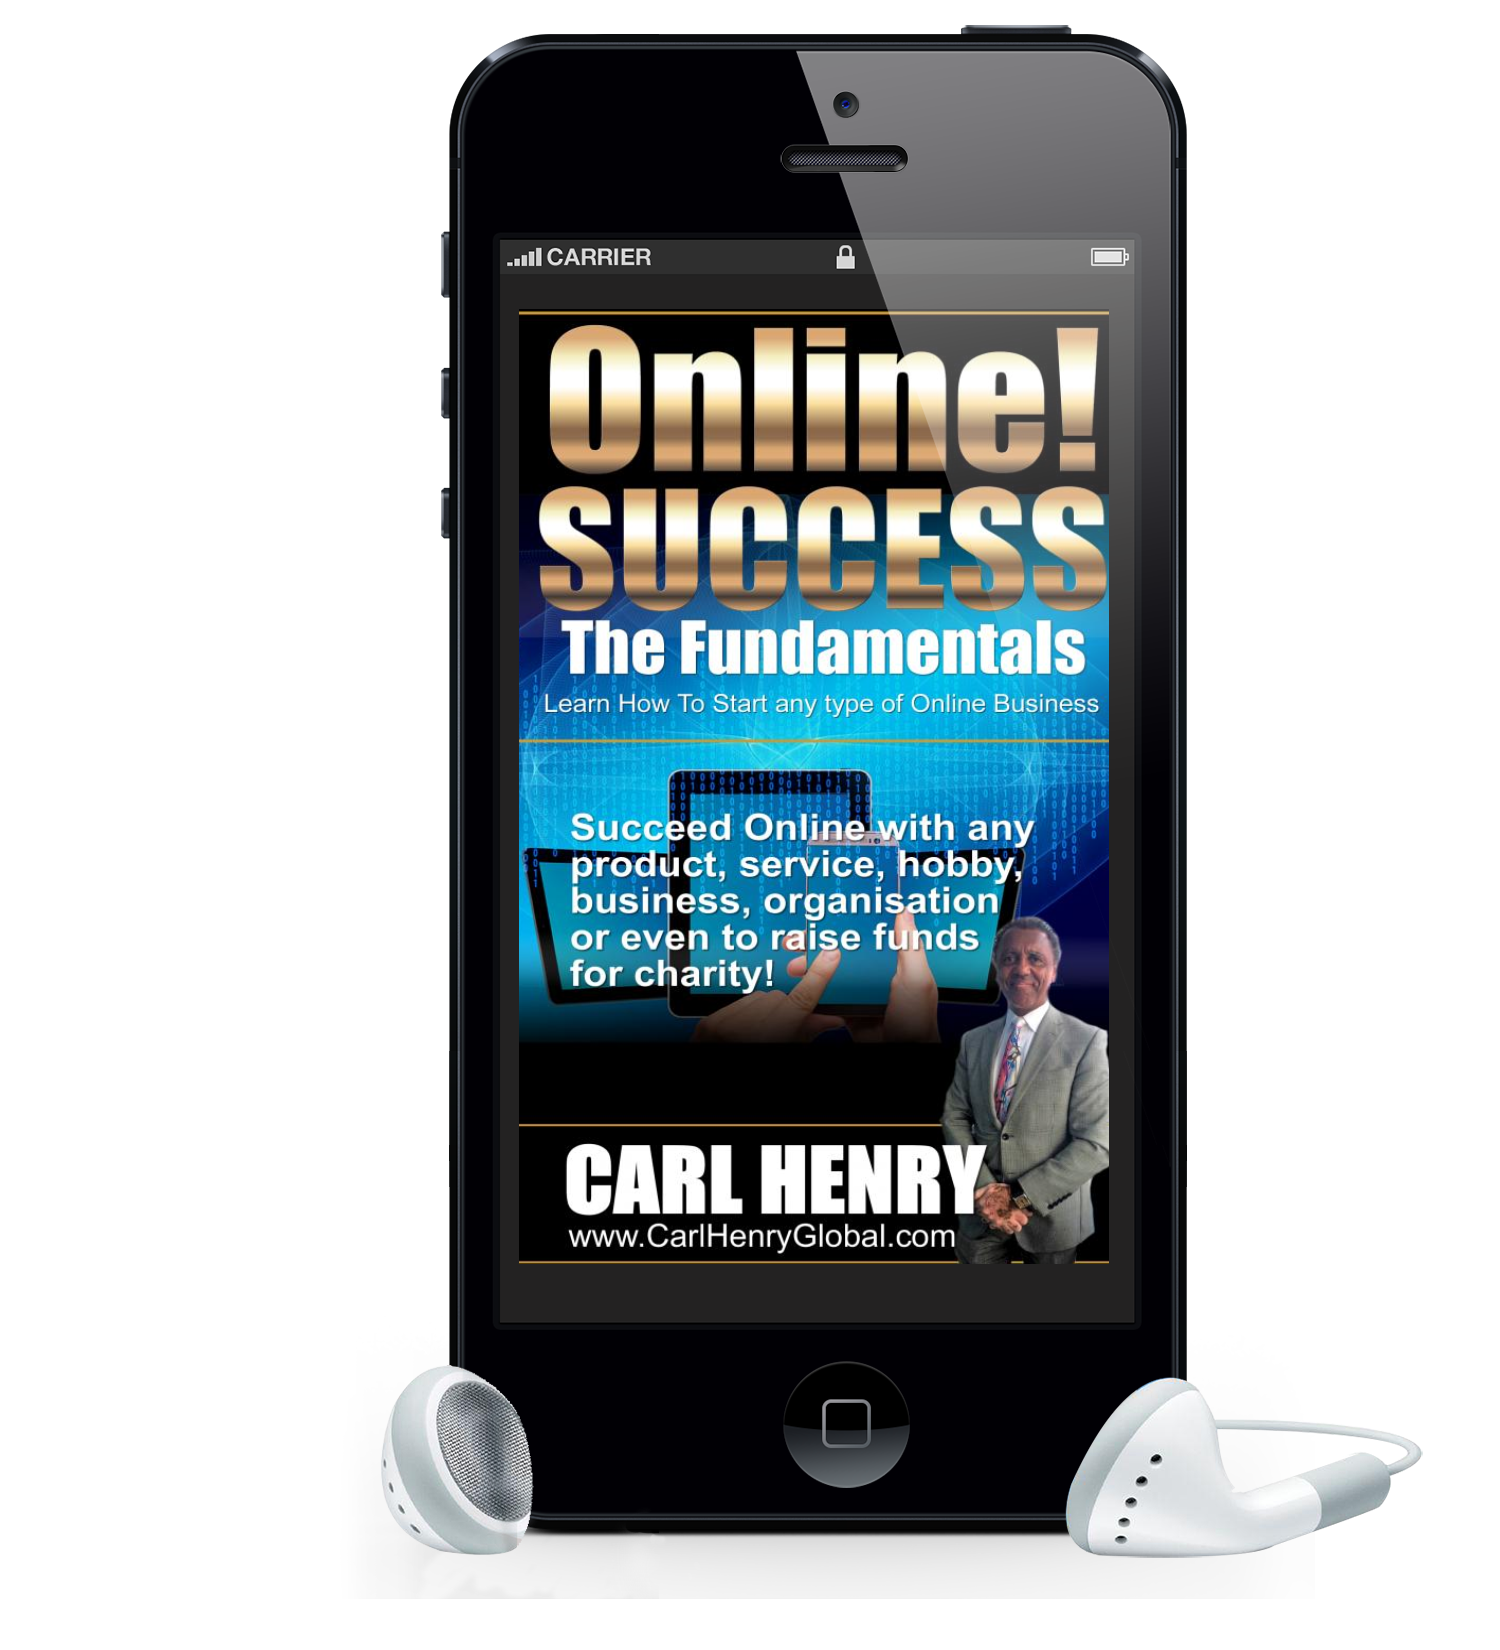 Carl-Henry-ONLINE-SUCCESS-iPhone-1500x1650.png